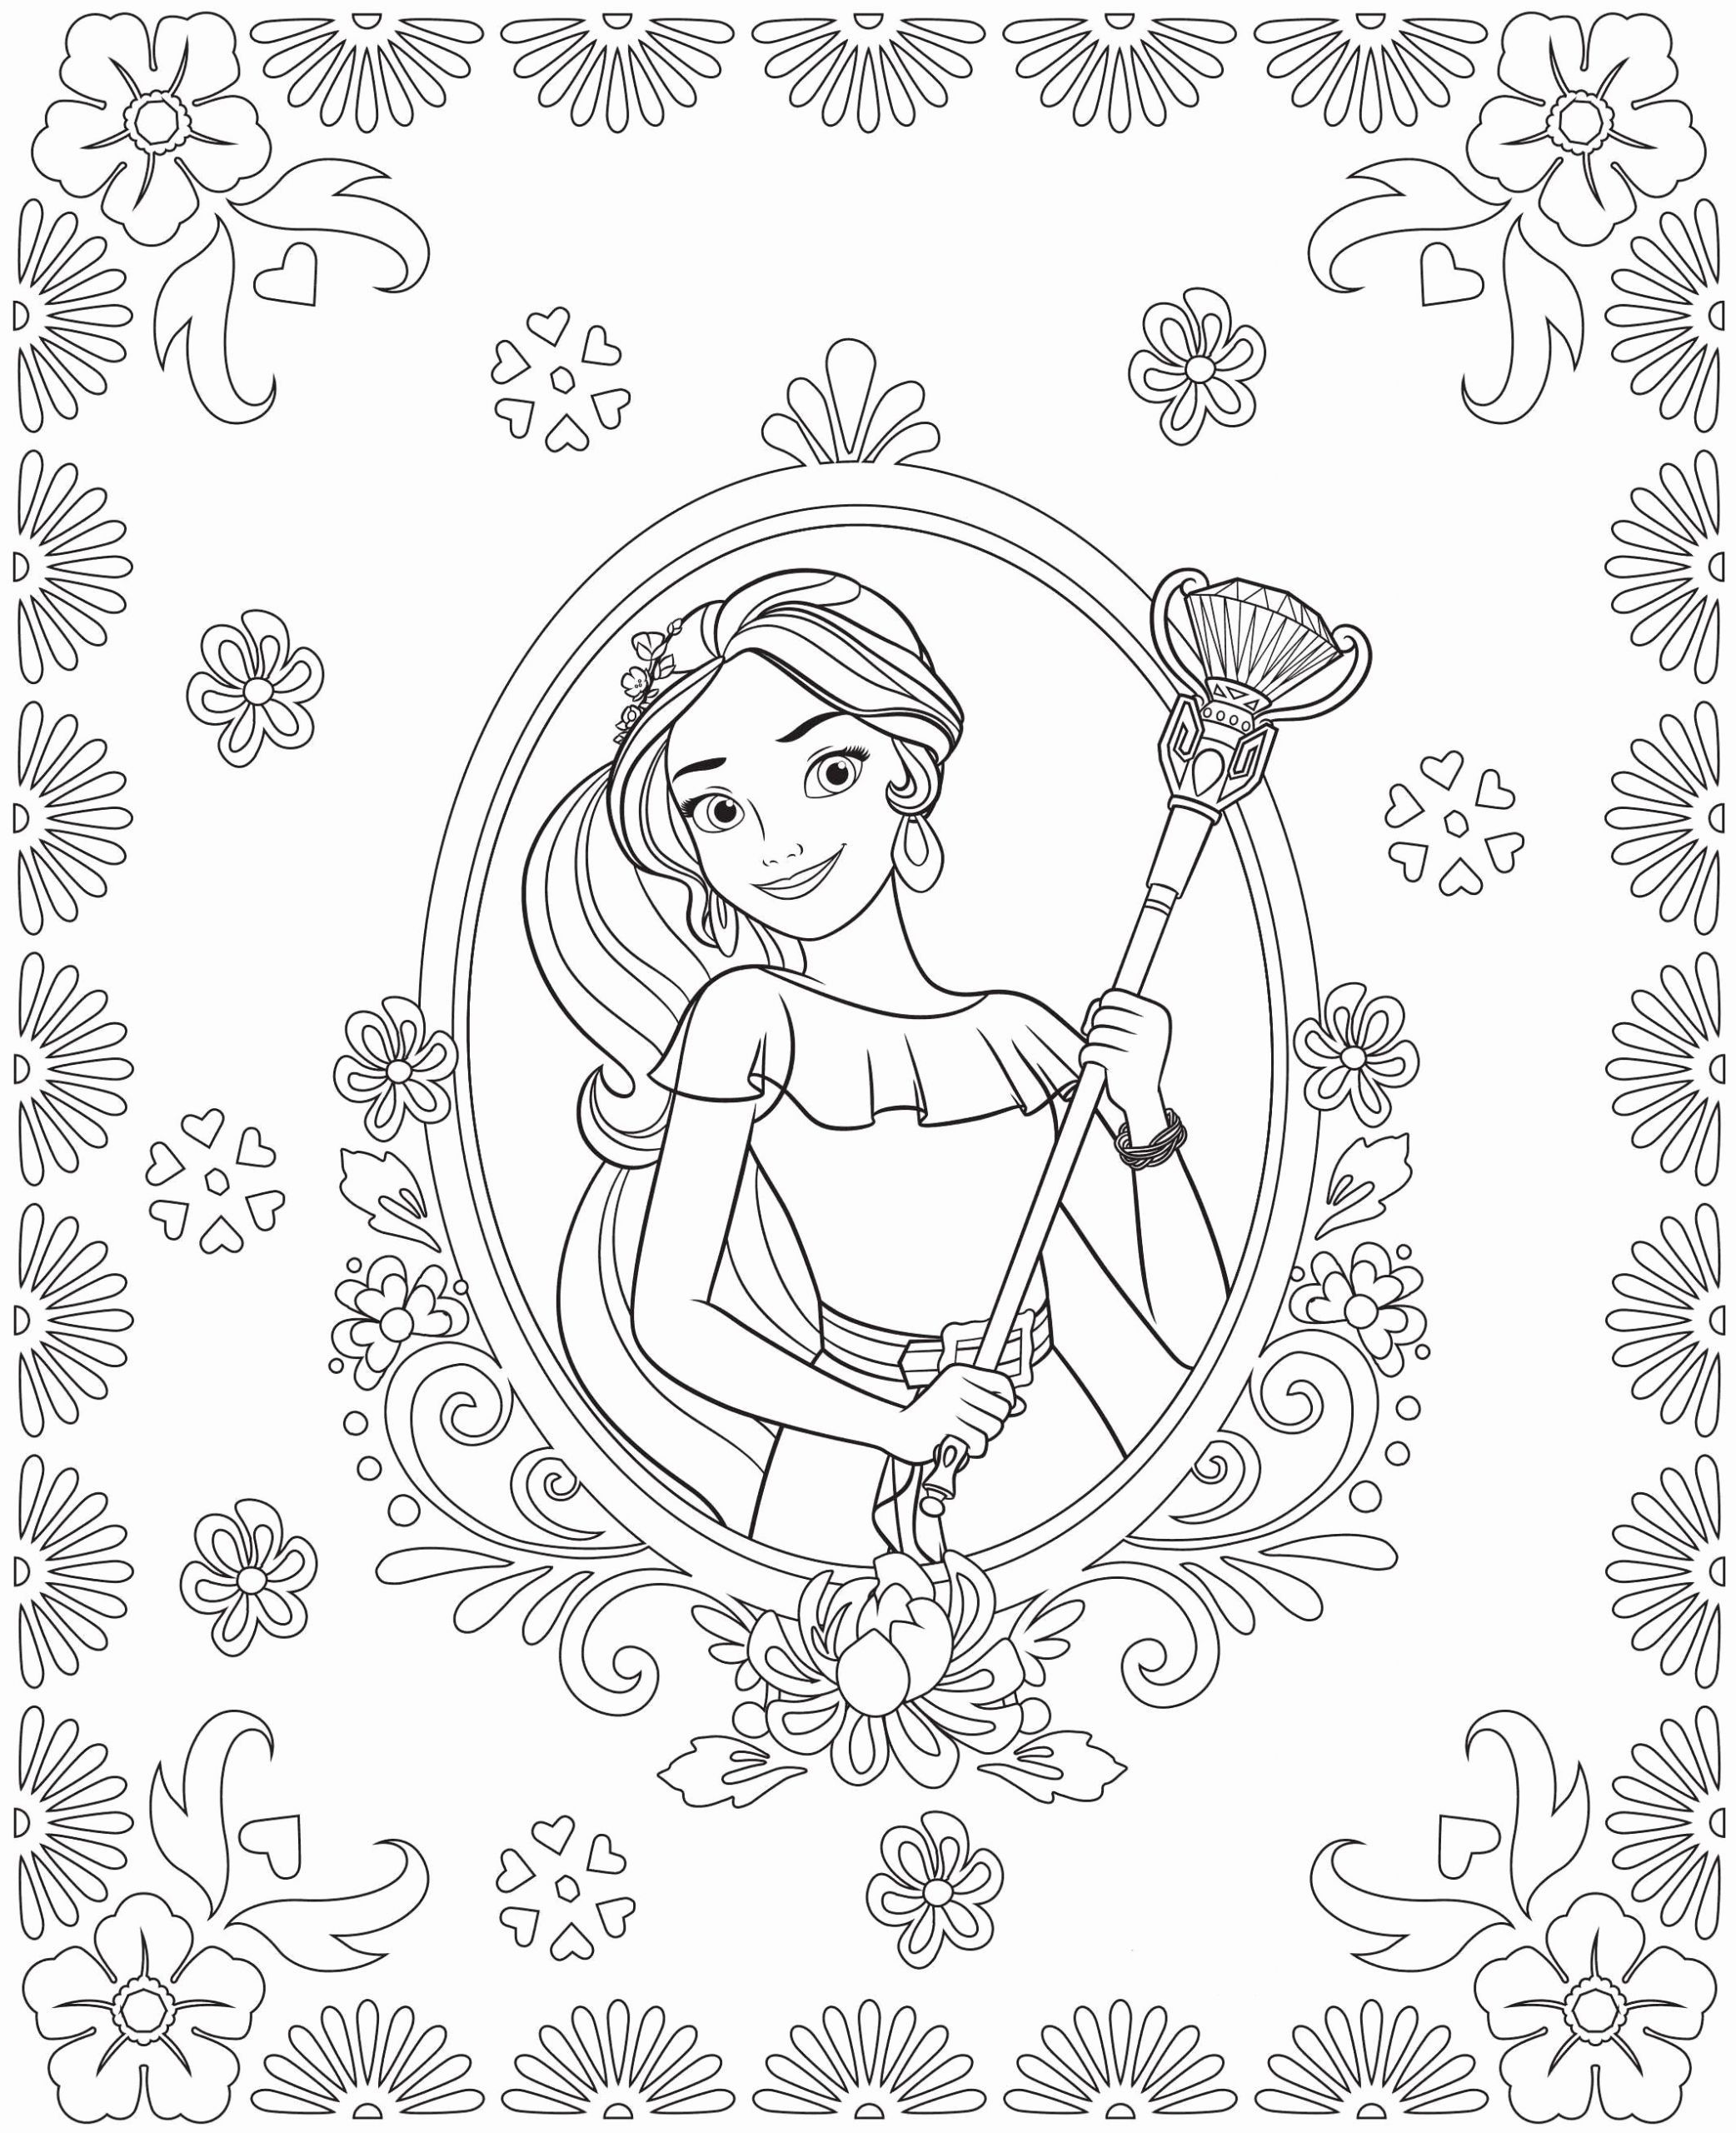 Elena Of Avalor Coloring Book Unique Kids N Fun Disney Coloring Pages Cartoon Coloring Pages Coloring Pages